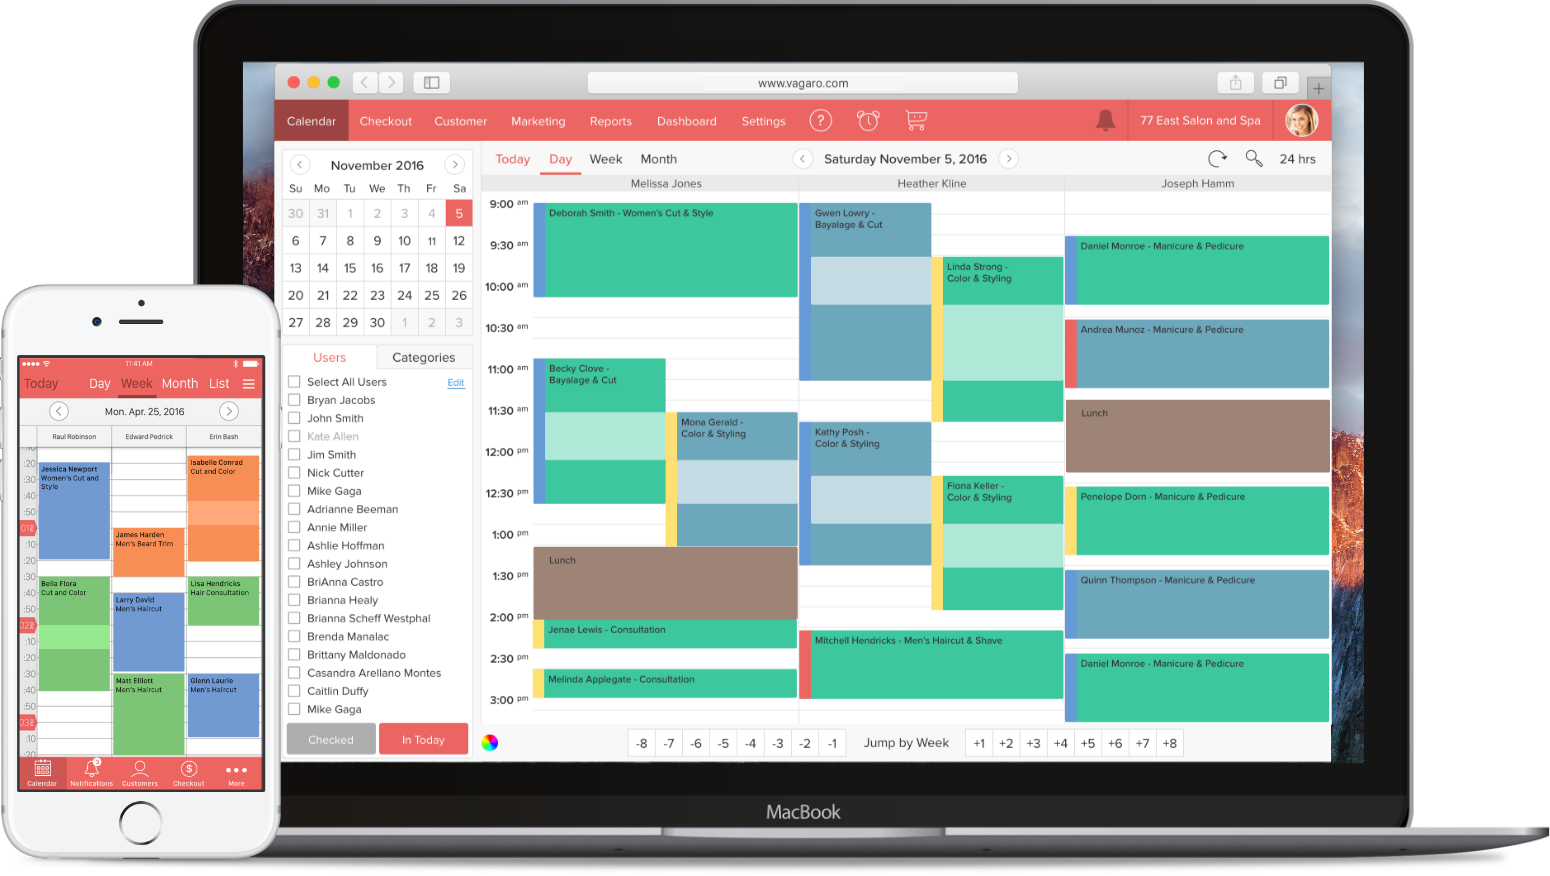 Managing your spa operation is now easy with Vagaro's spa scheduling